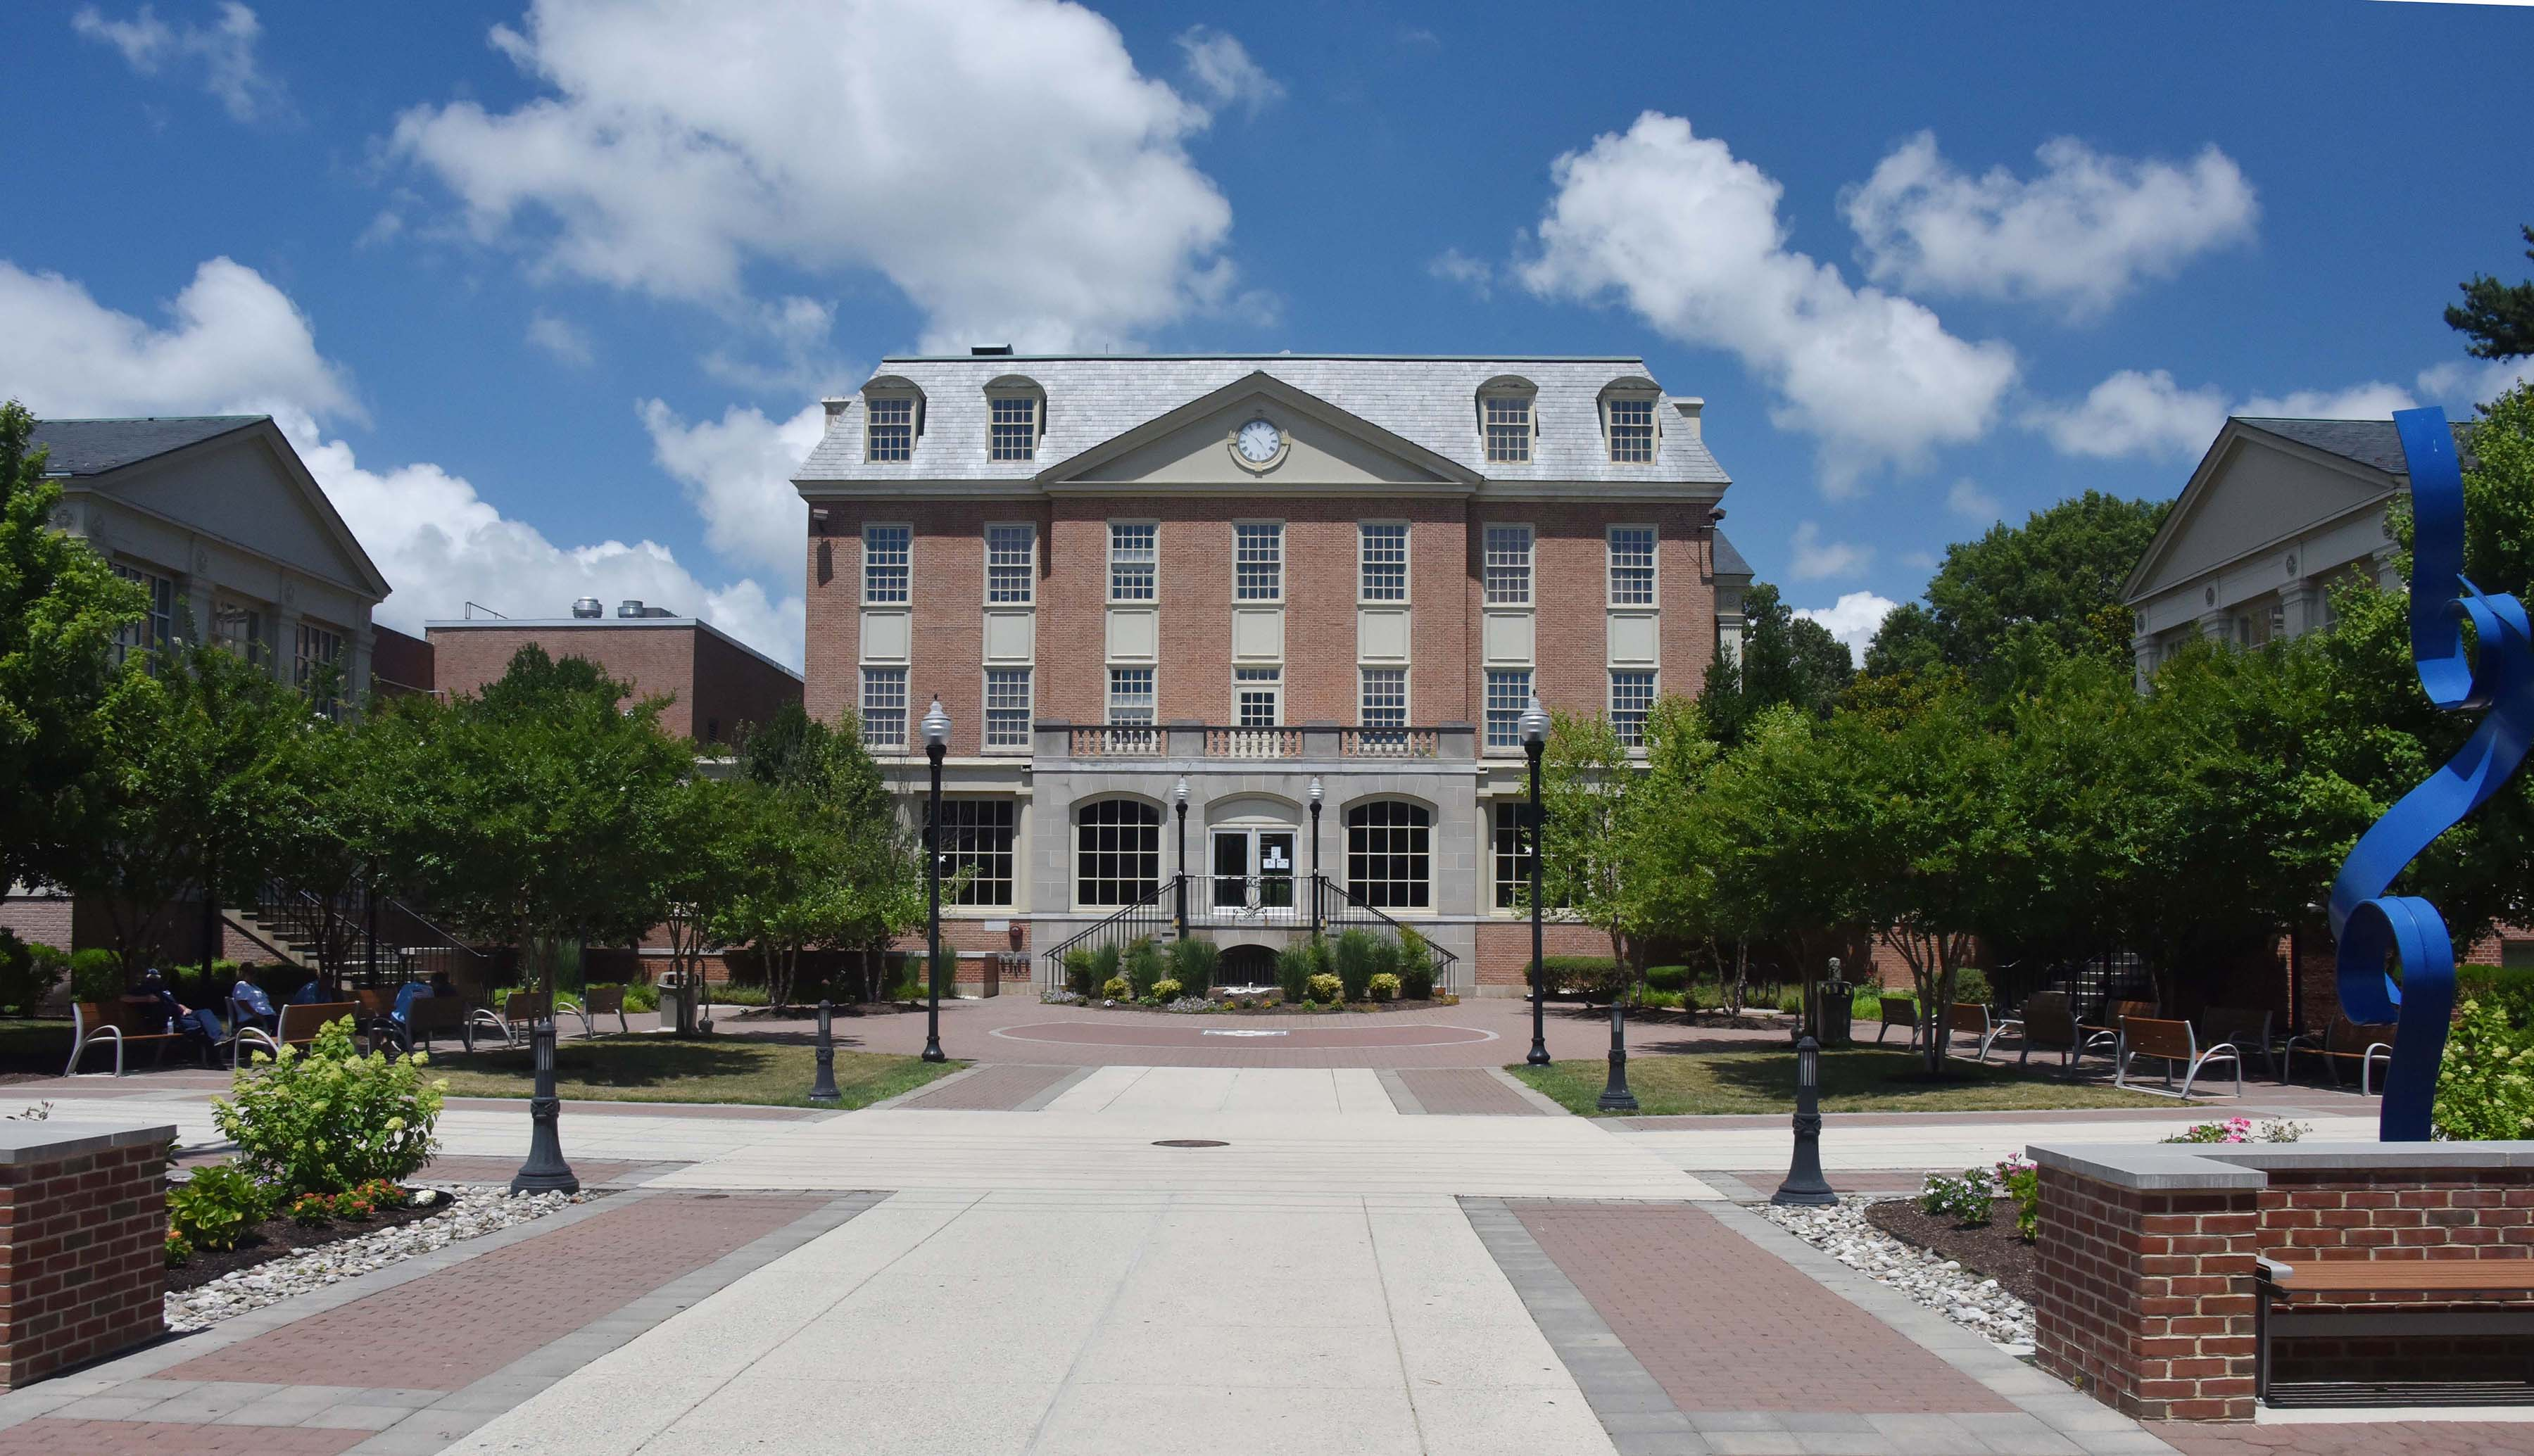 The Longwood award will help Delaware State University cover the transition costs in connection with its acquisition of Wesley College in Dover. Once finalized, Wesley's DuPont Hall (pictured) will be one of the Wesley properties that will become part of Del State.